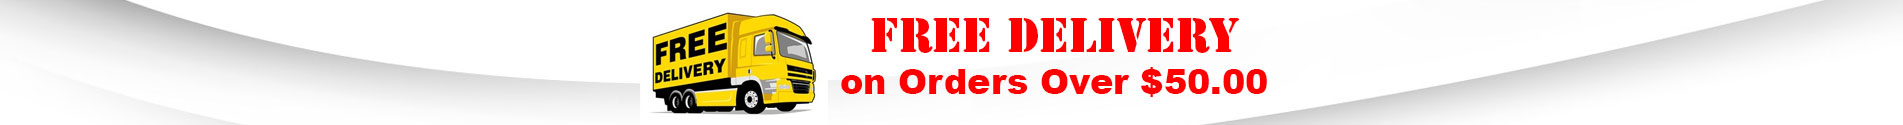 Free Delivery On Orders Over $50.00